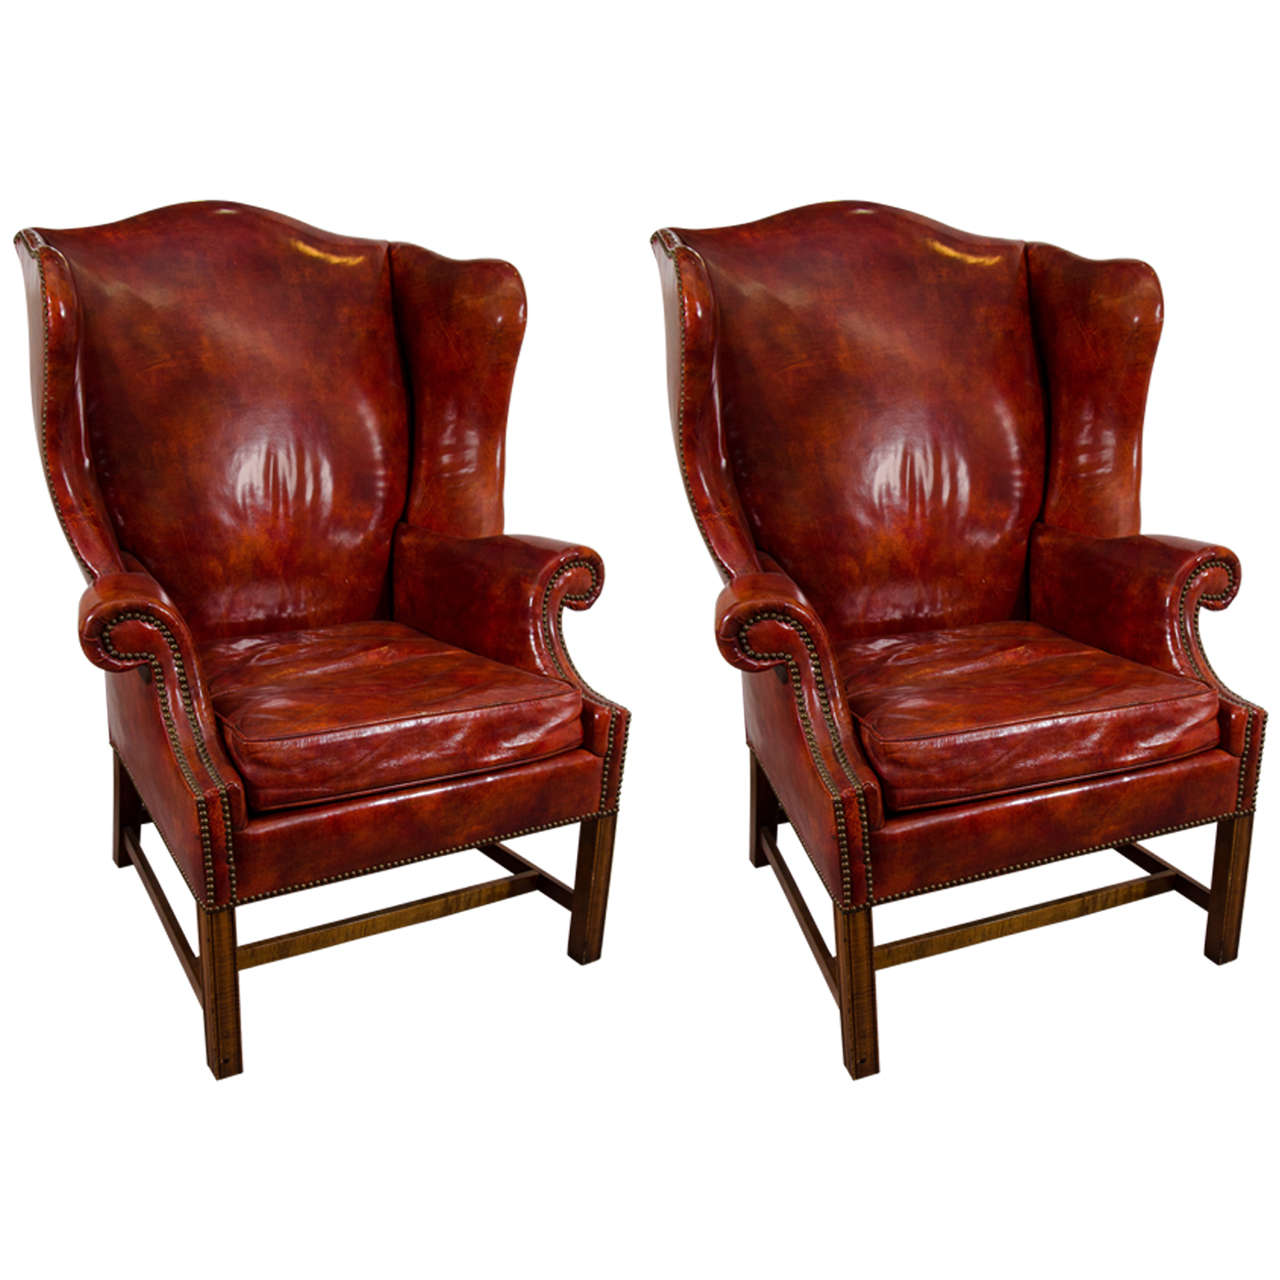 Oxblood Leather Wing Chair World Market Outdoor Cushions Darya Girina Interior Design